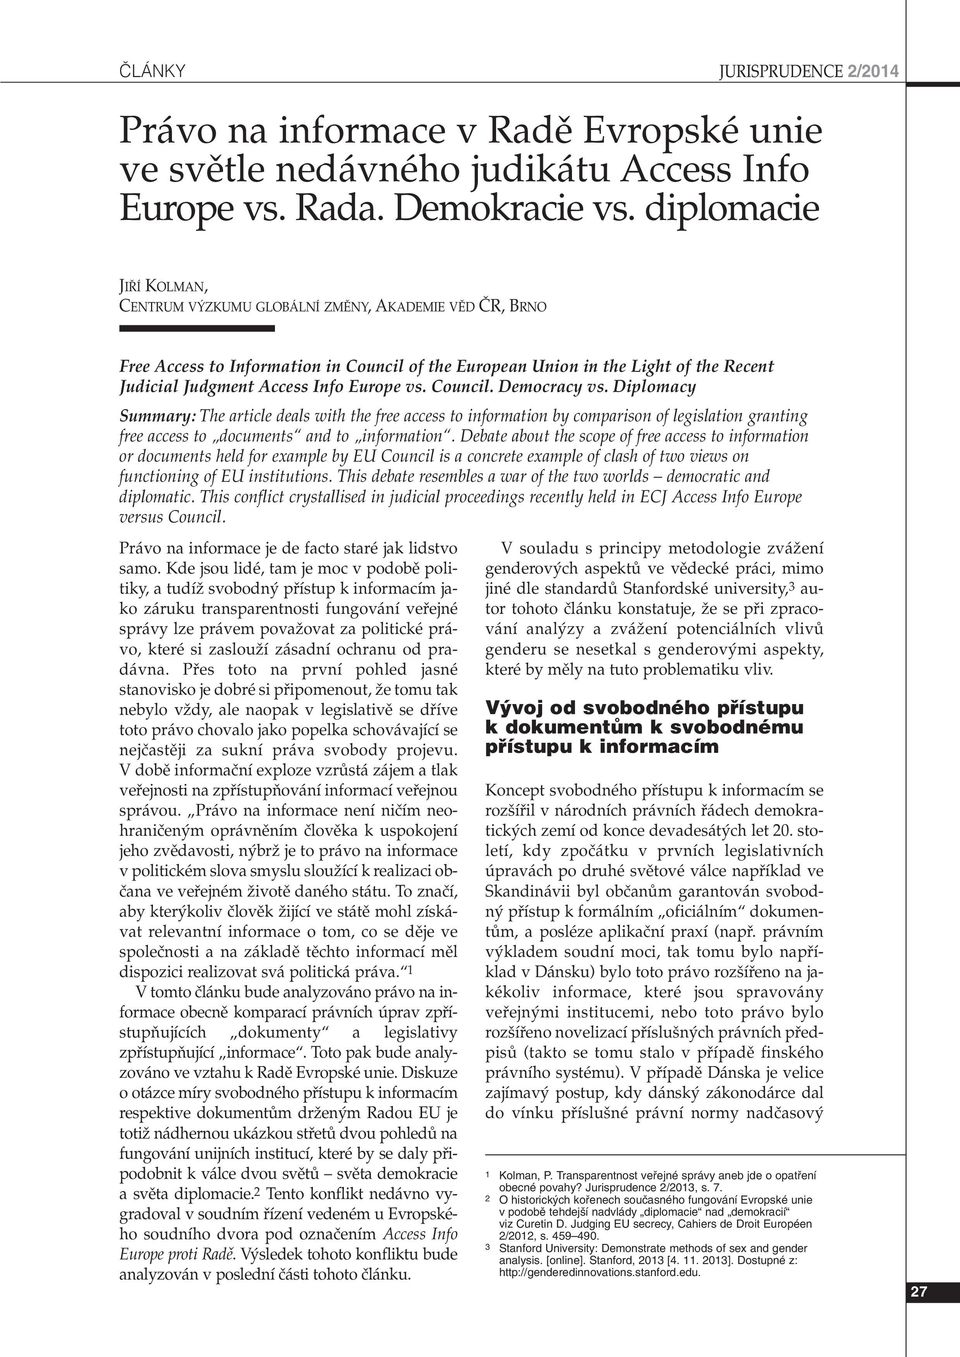 Europe vs. Council. Democracy vs. Diplomacy Summary: The article deals with the free access to information by comparison of legislation granting free access to documents and to information.